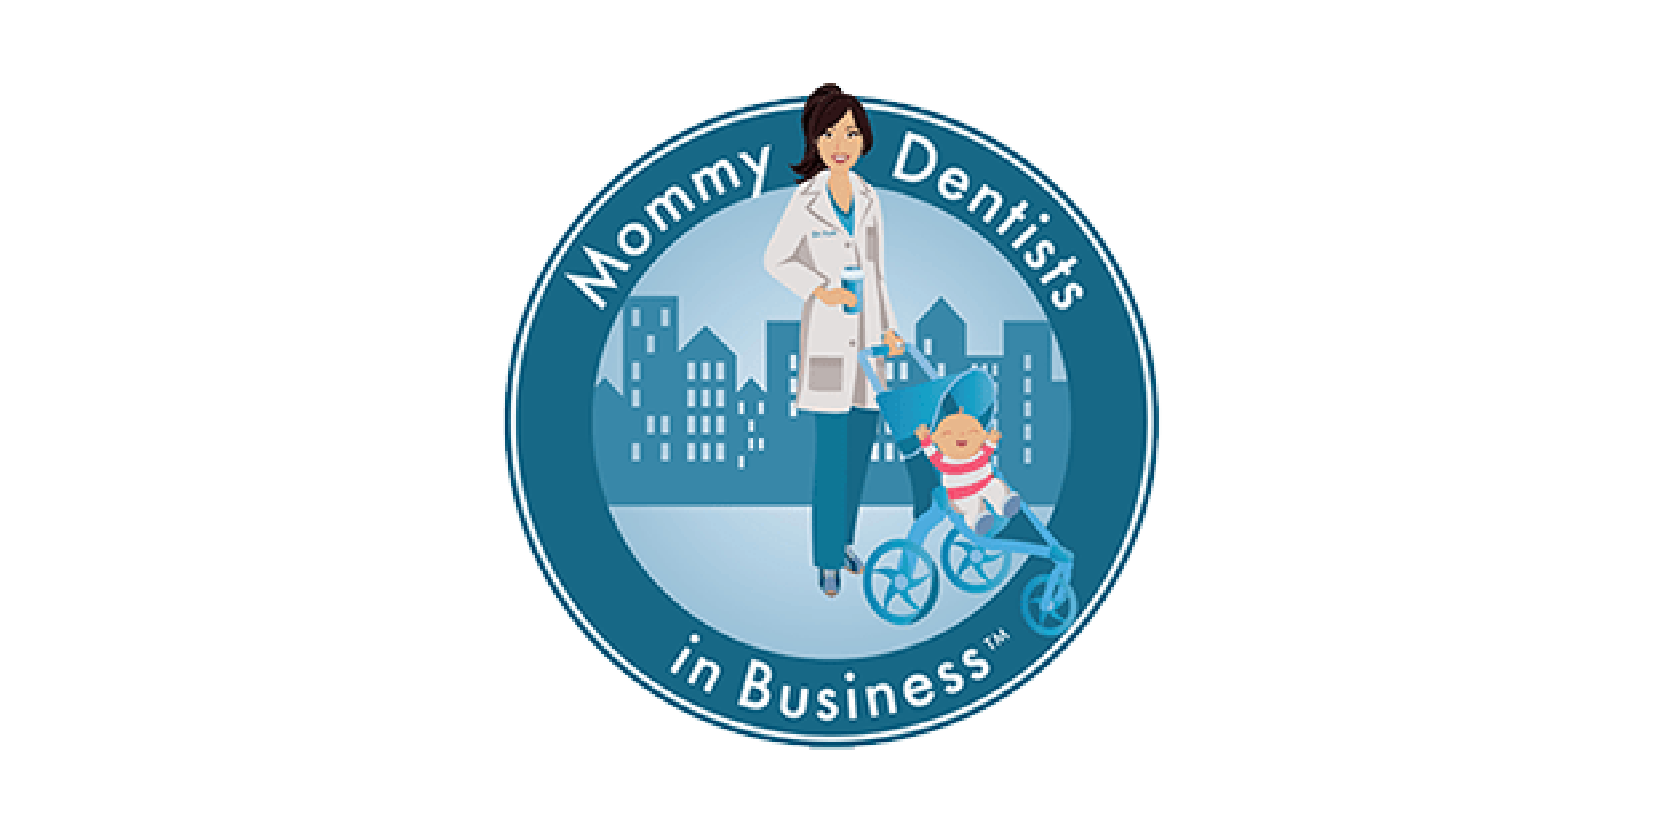 - Mommy Dentists in Business is a group of moms that are practicing dentists. We are here to support one another through networking, continuing education and social events.